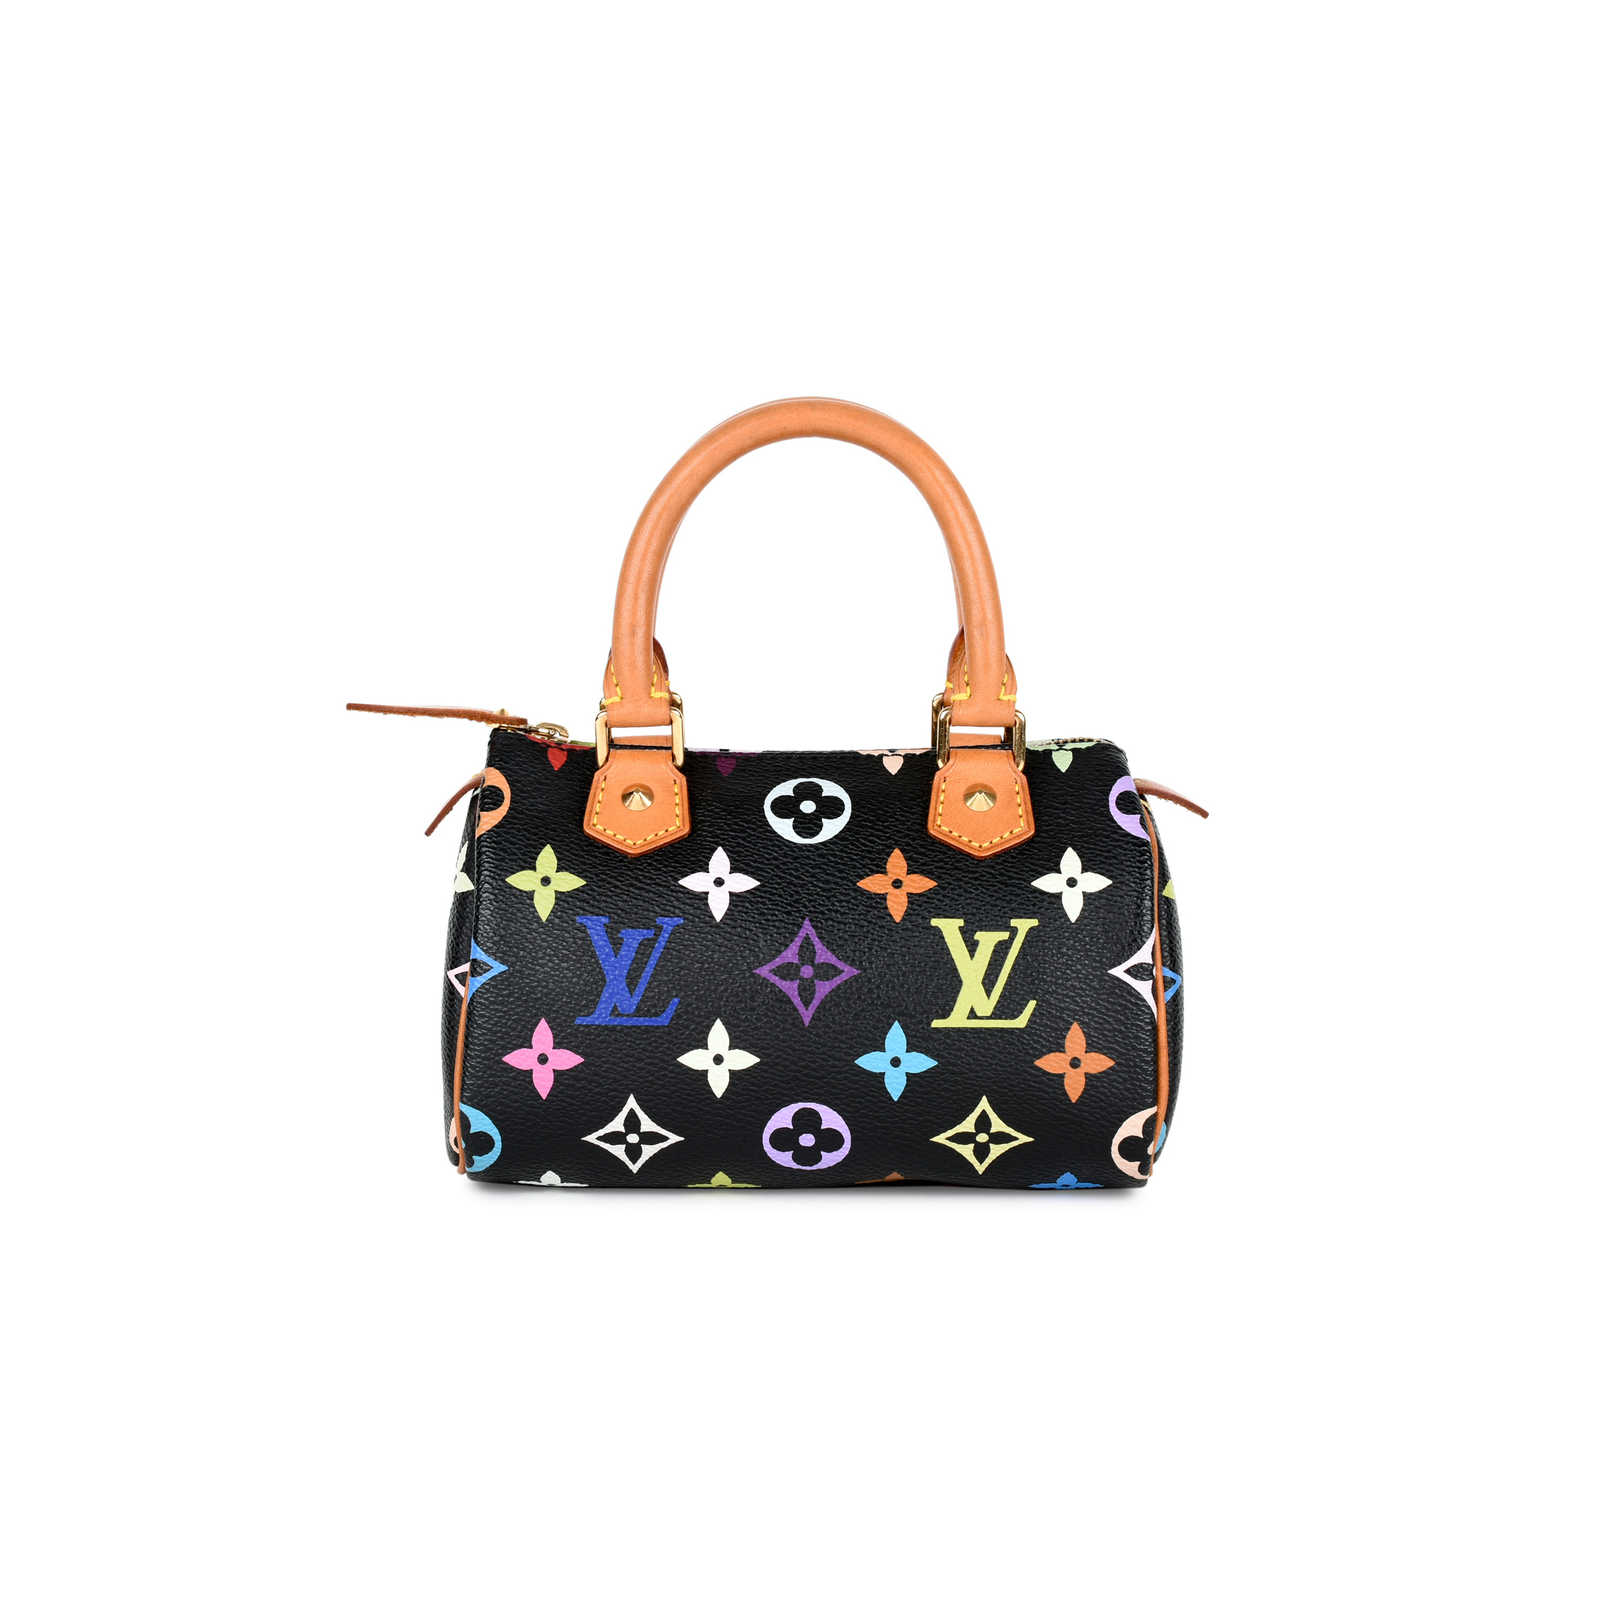 a0285a24aaf36 Authentic Second Hand Louis Vuitton Multicolore Mini Sac HL Speedy  (PSS-034-00016 ...